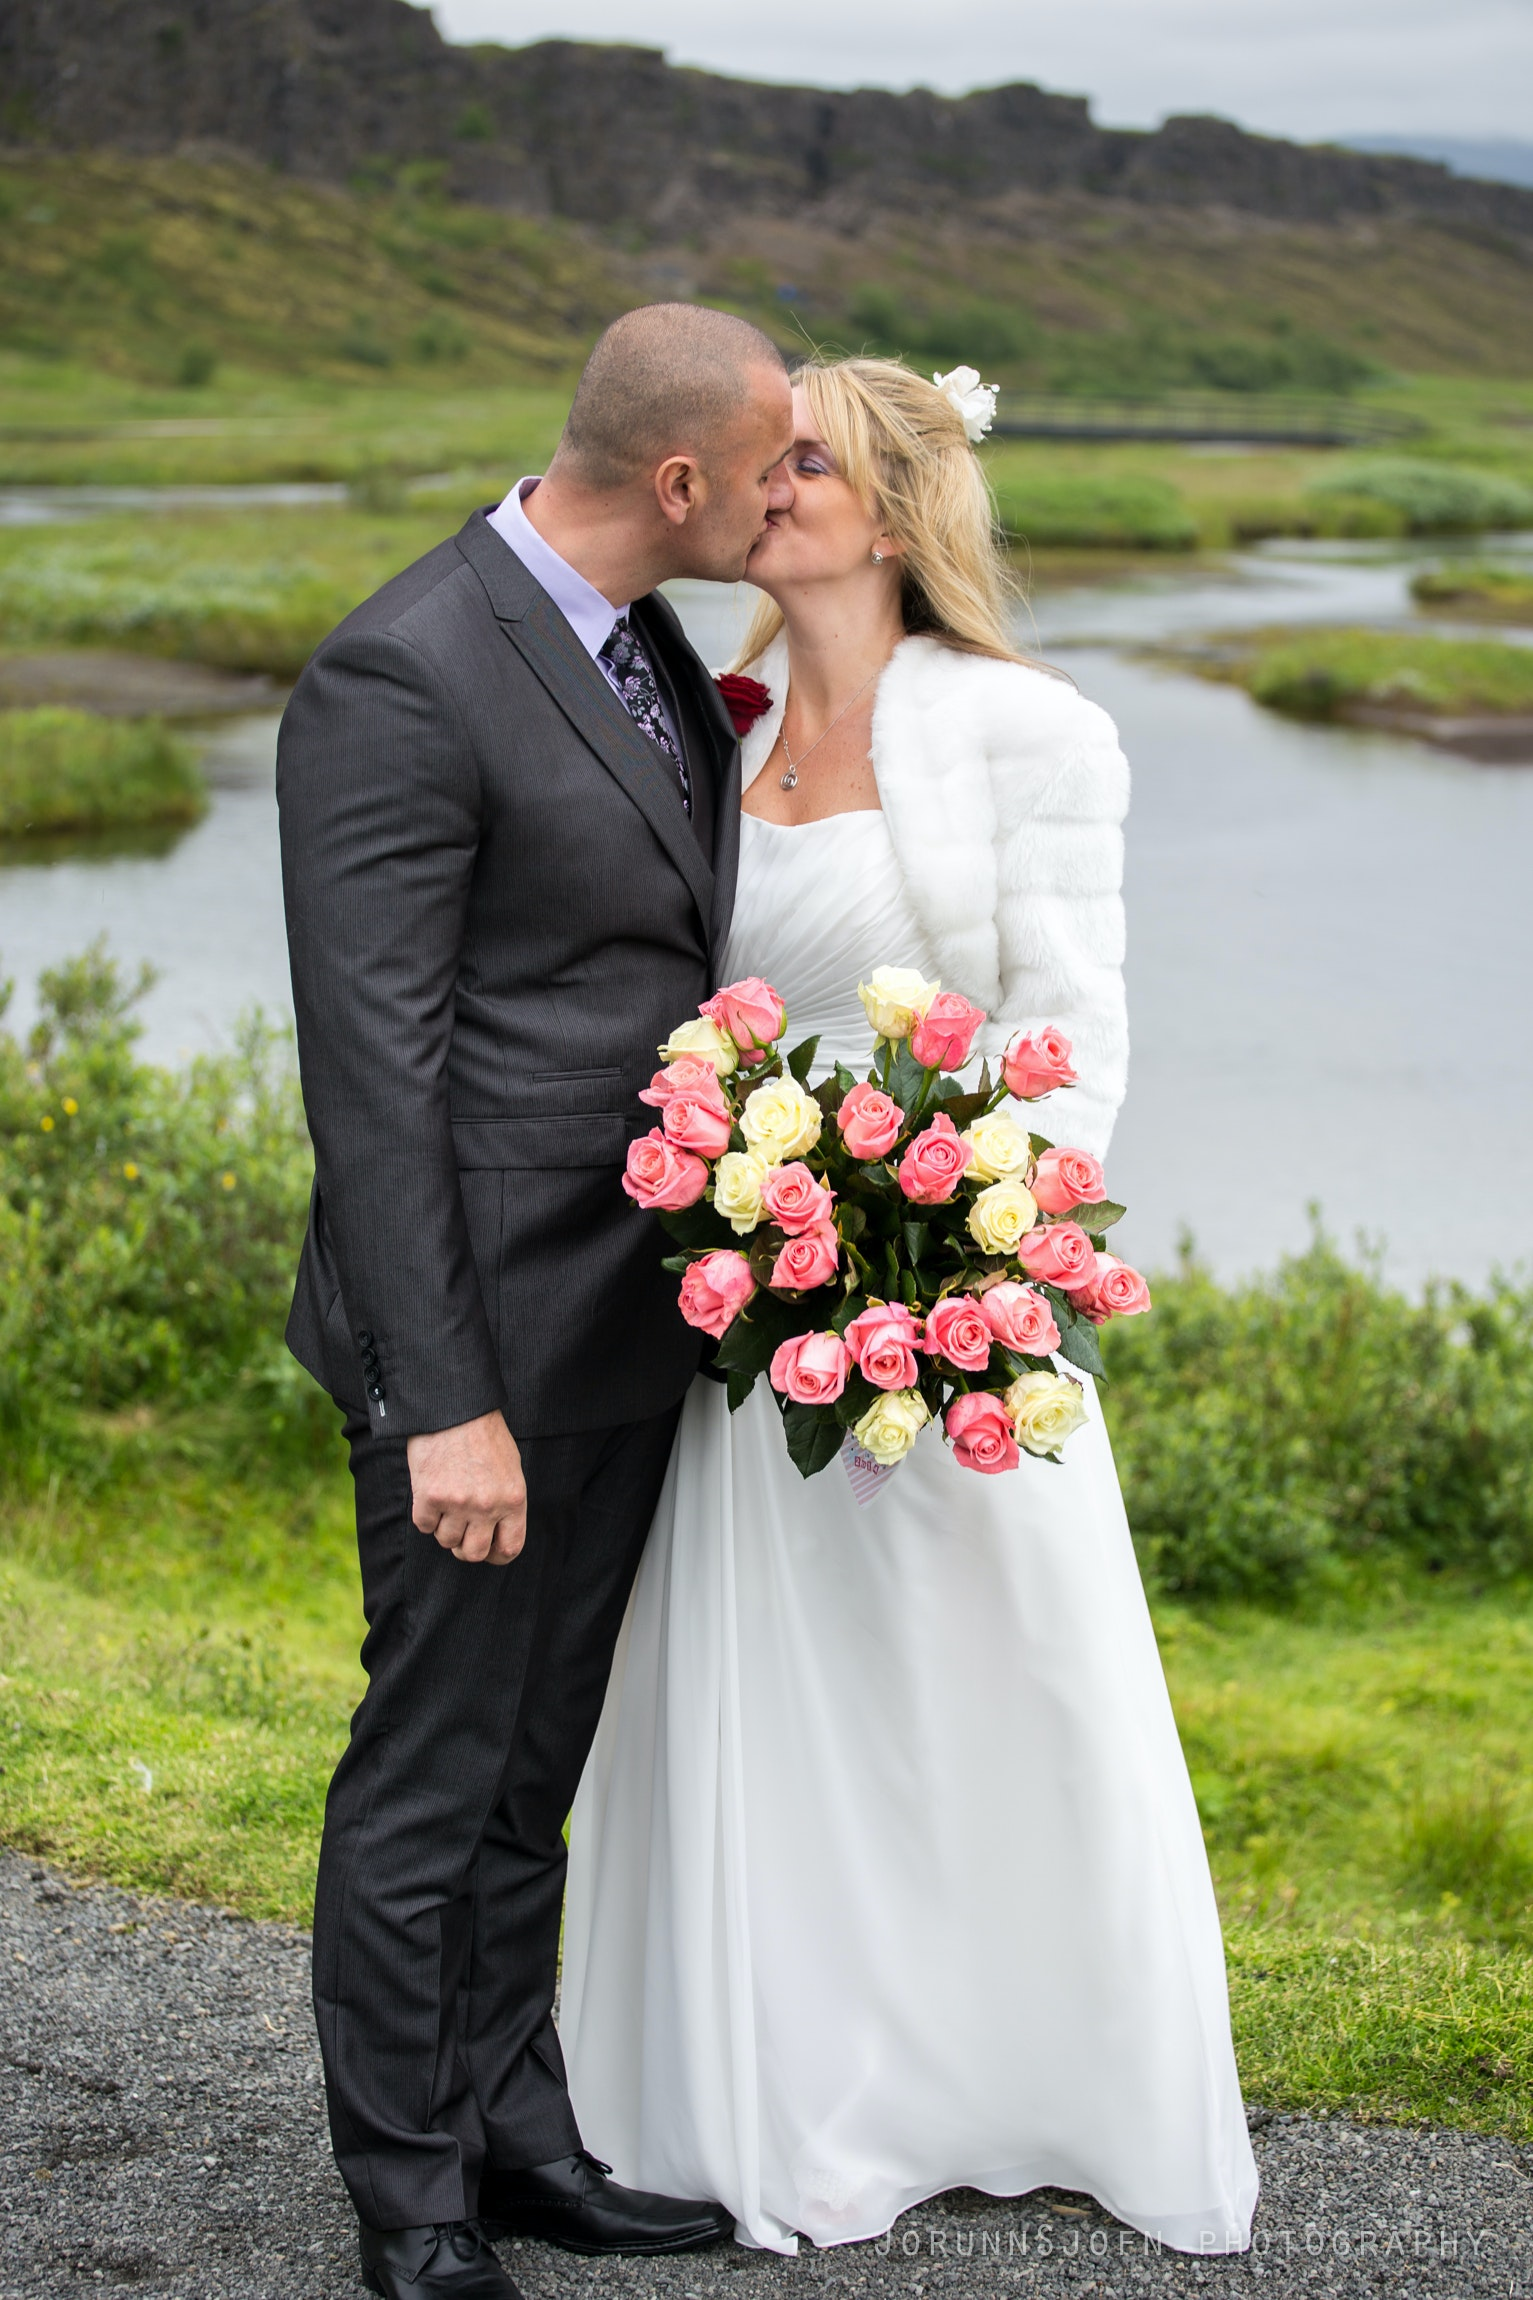 Why not get married in Iceland?